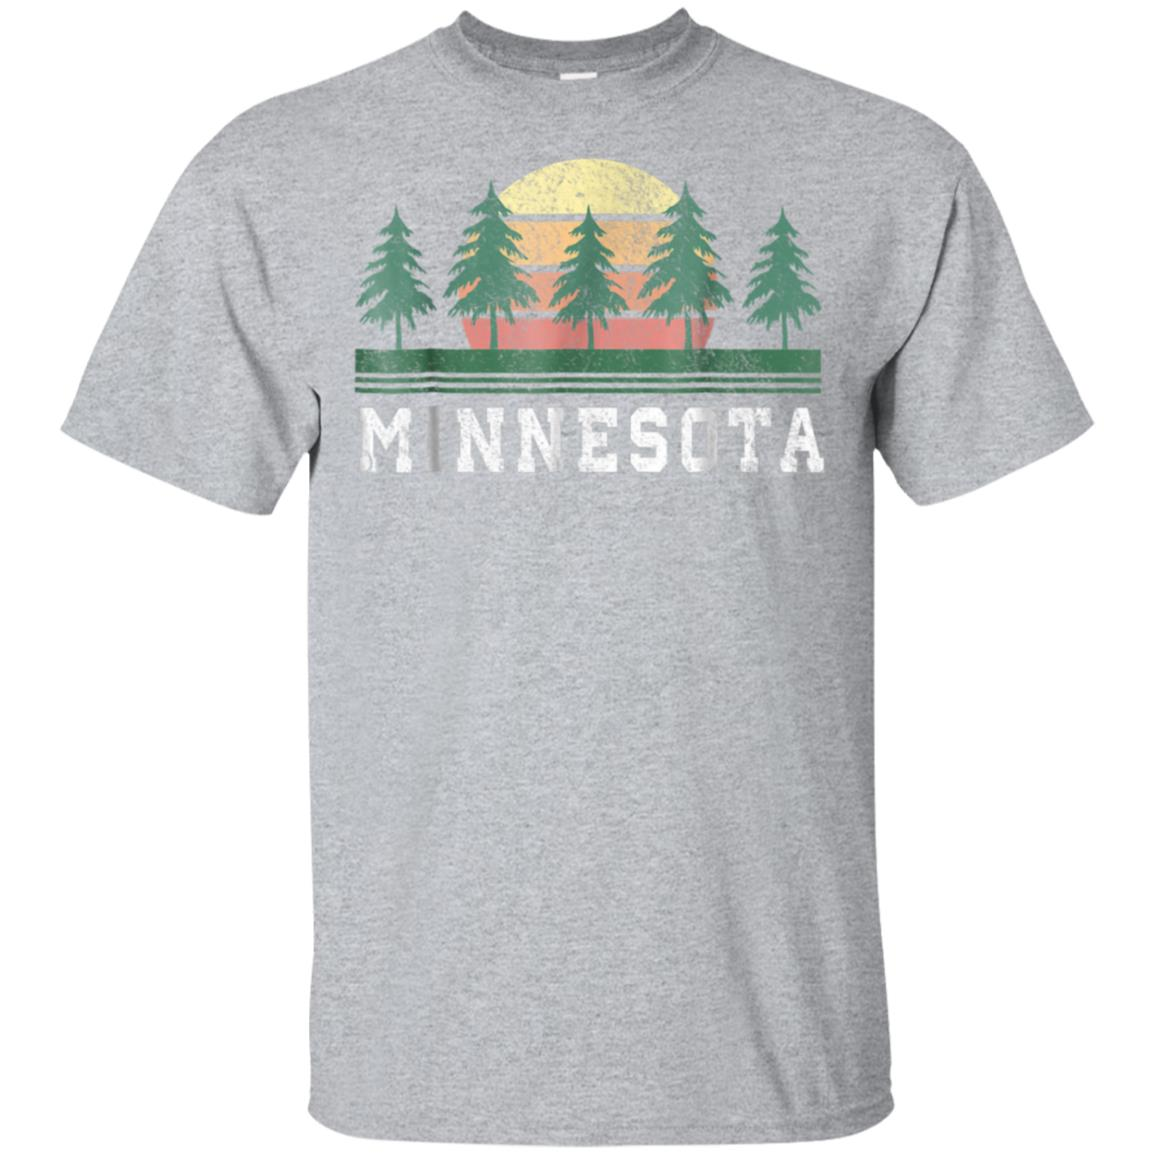 Minnesota MN T-Shirt Retro Vintage Shirt Gift Men Women Kids 99promocode